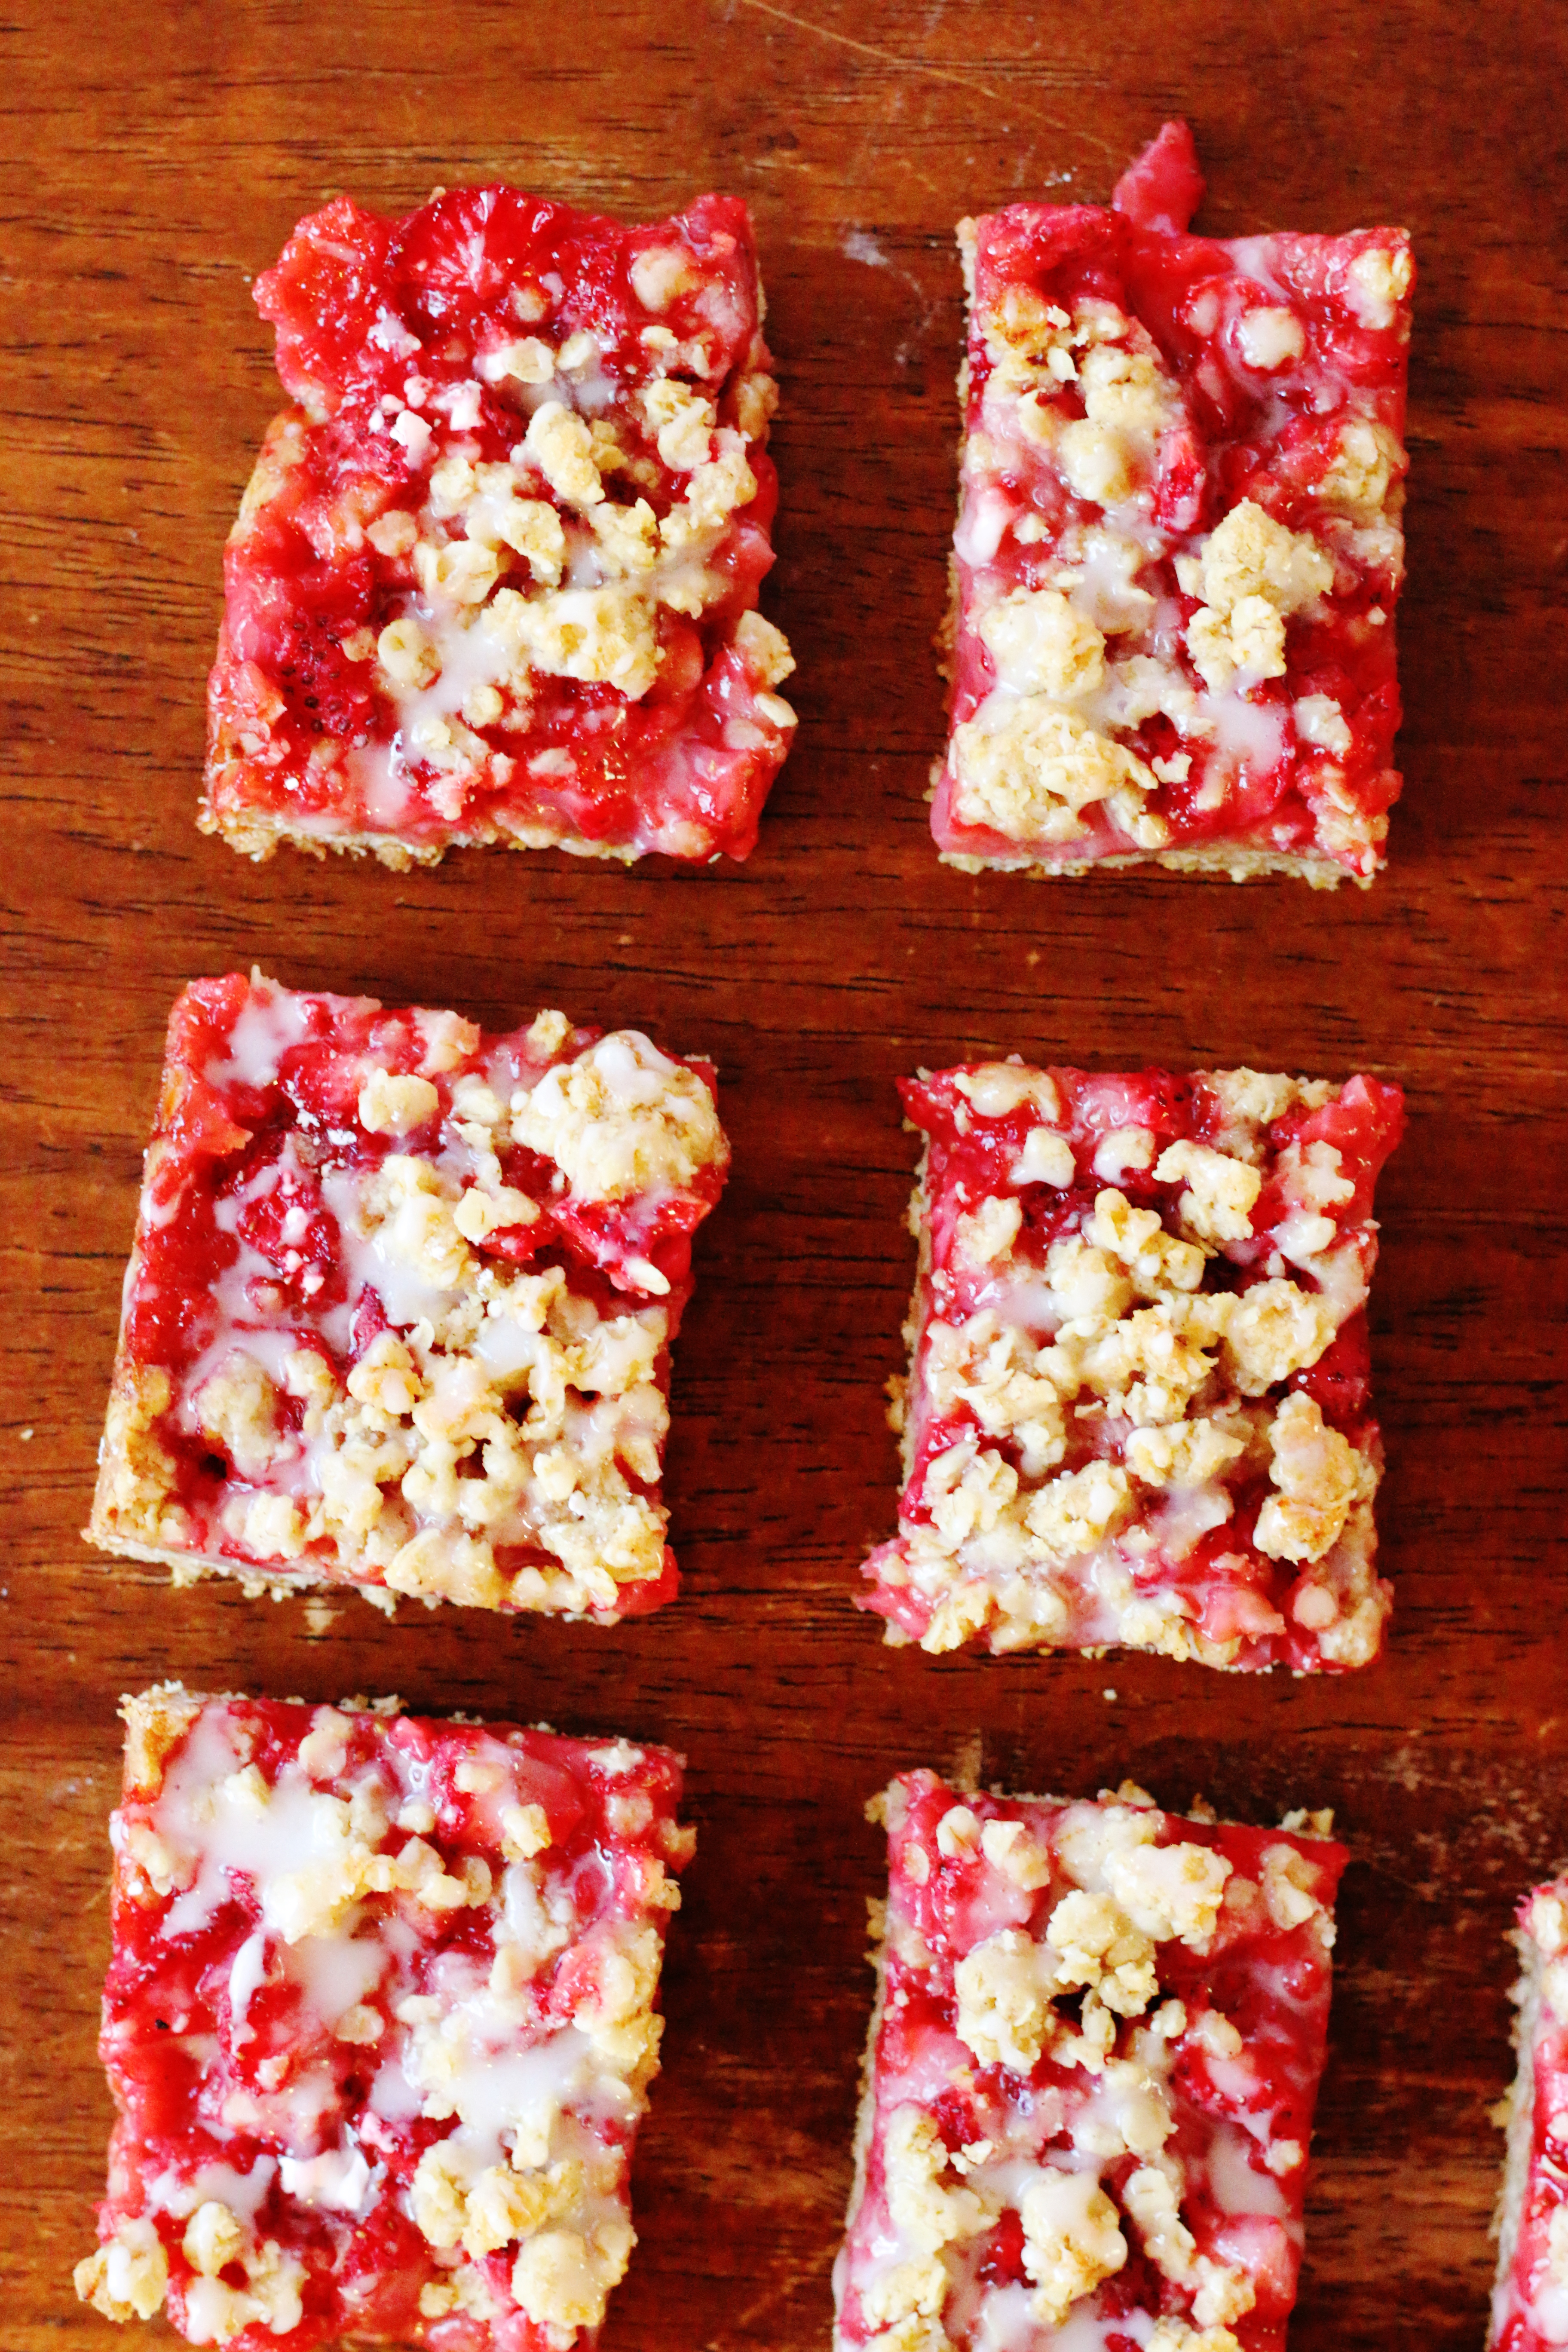 These oatmeal bars feature strawberries spread over a buttery, streusel-like crust. The vanilla glaze makes them even more delicious! You'll love this amazingly easy recipe.